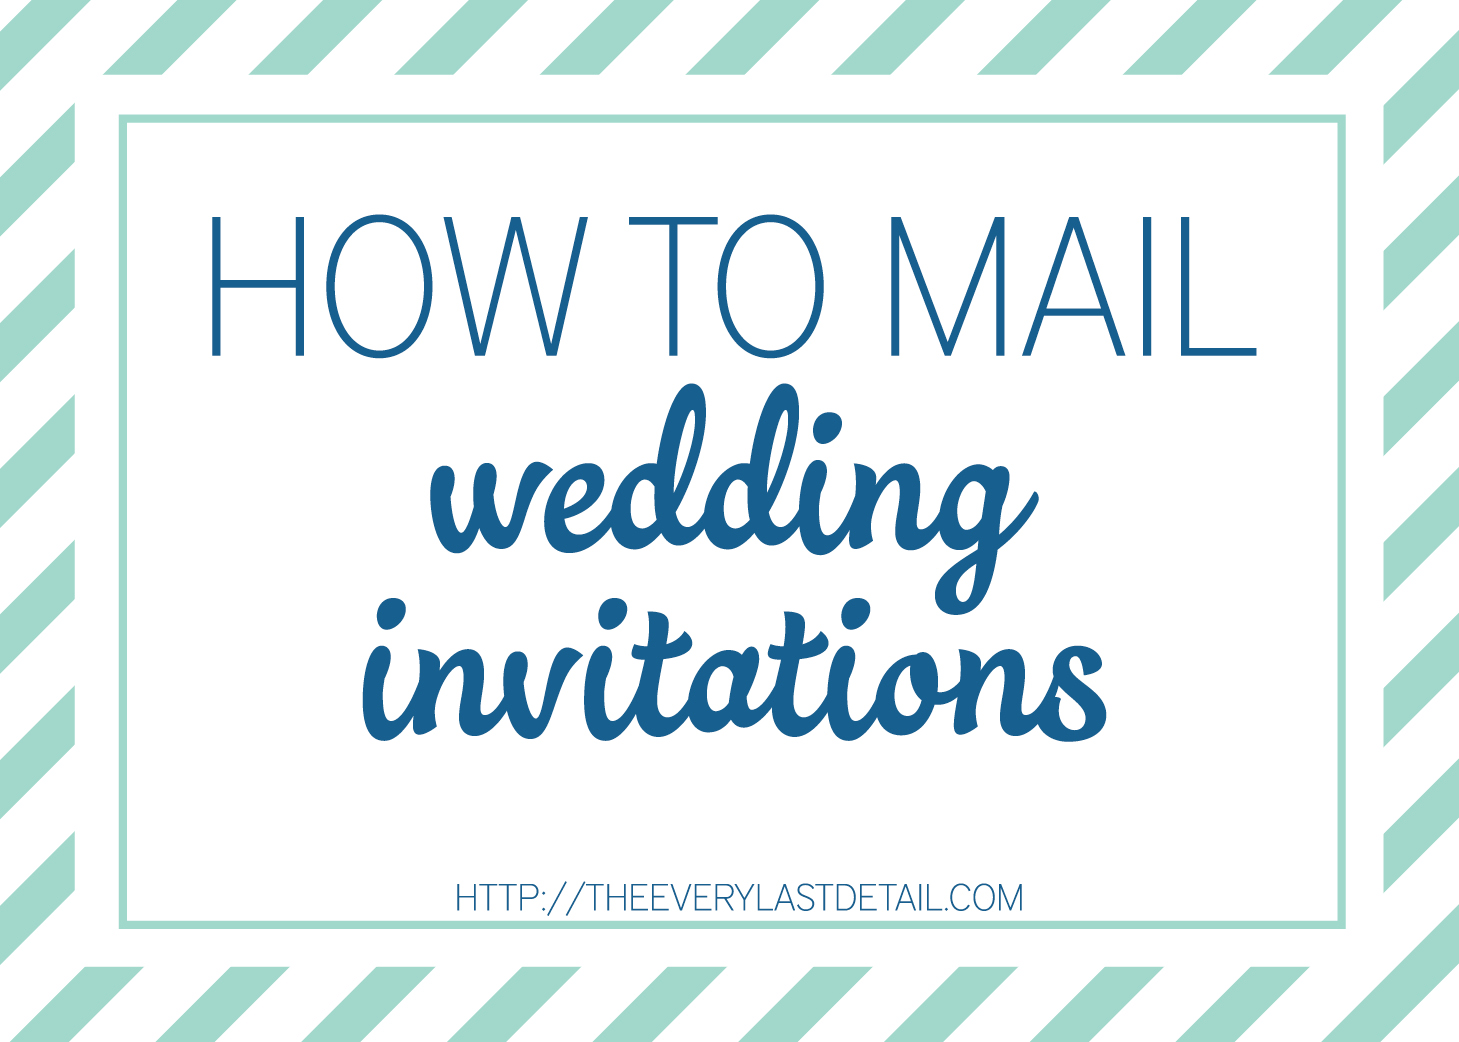 Mailing Wedding Invitations Every Last Detail